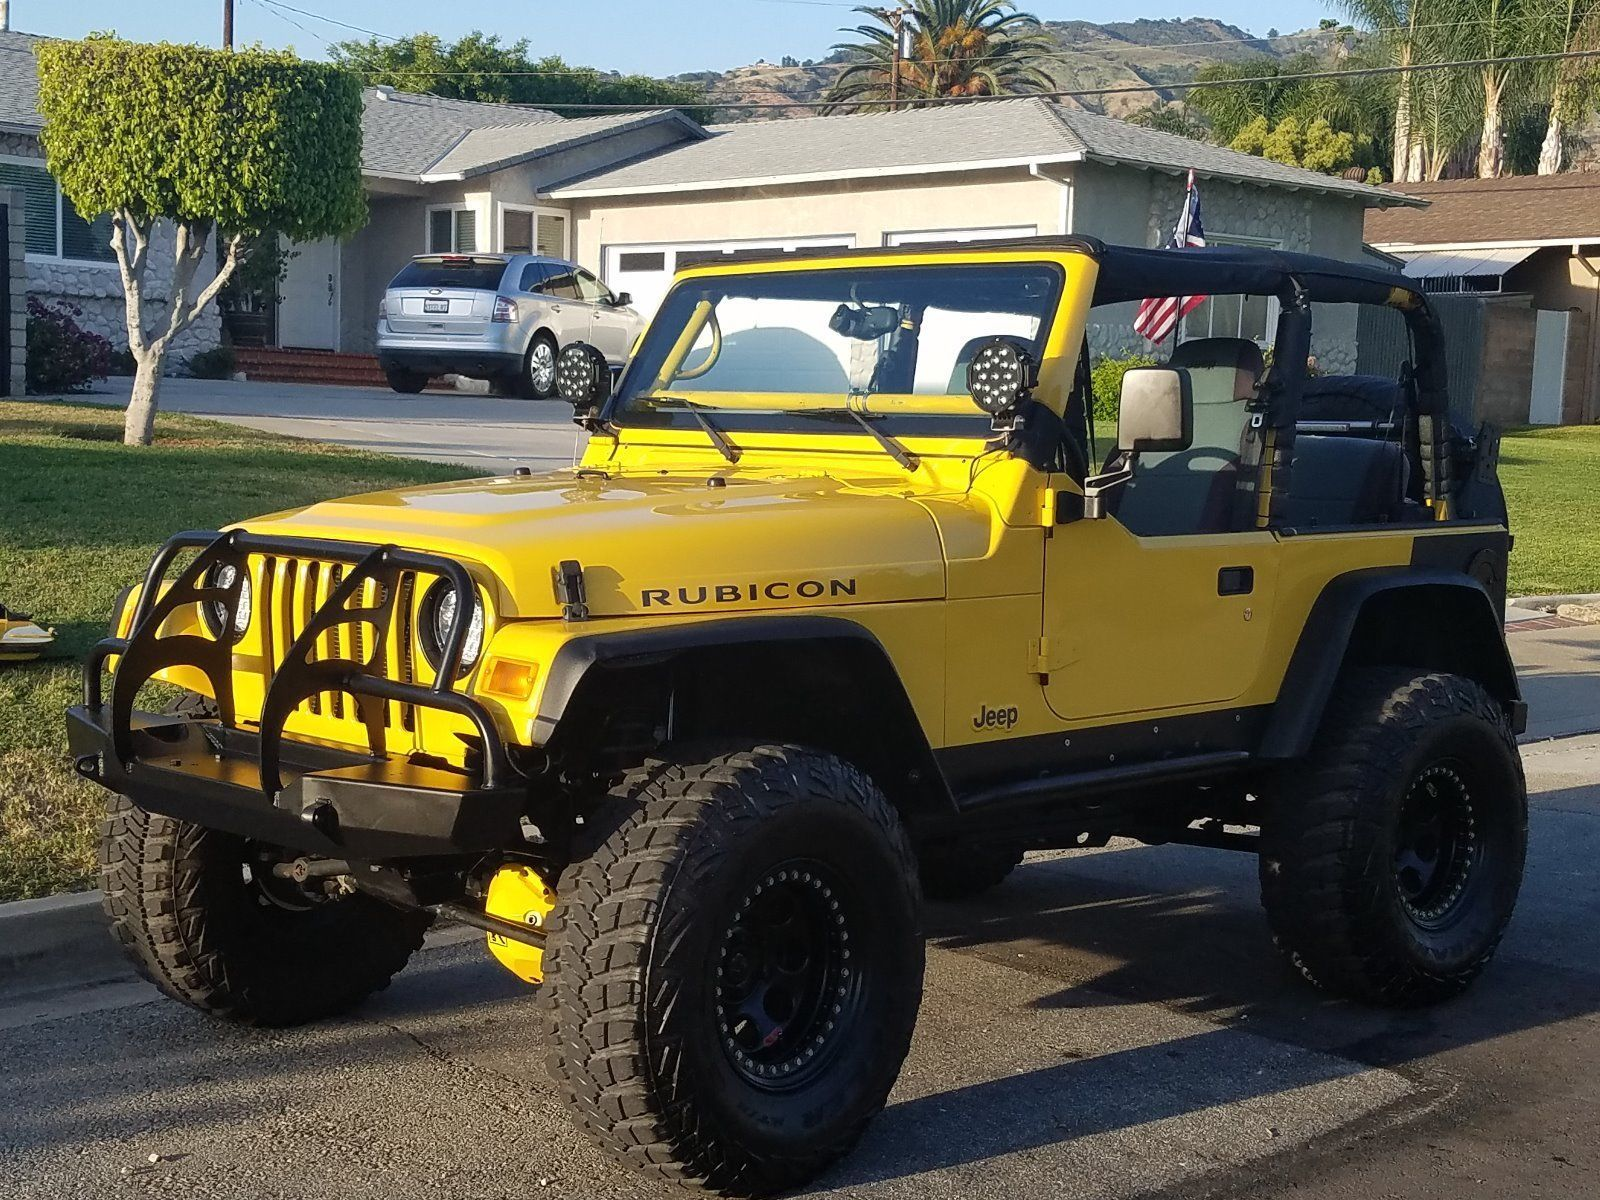 Built For Show 2004 Jeep Wrangler Black Amp Yellow 4 215 4 2004 Jeep Wrangler Jeep Wrangler Jeep